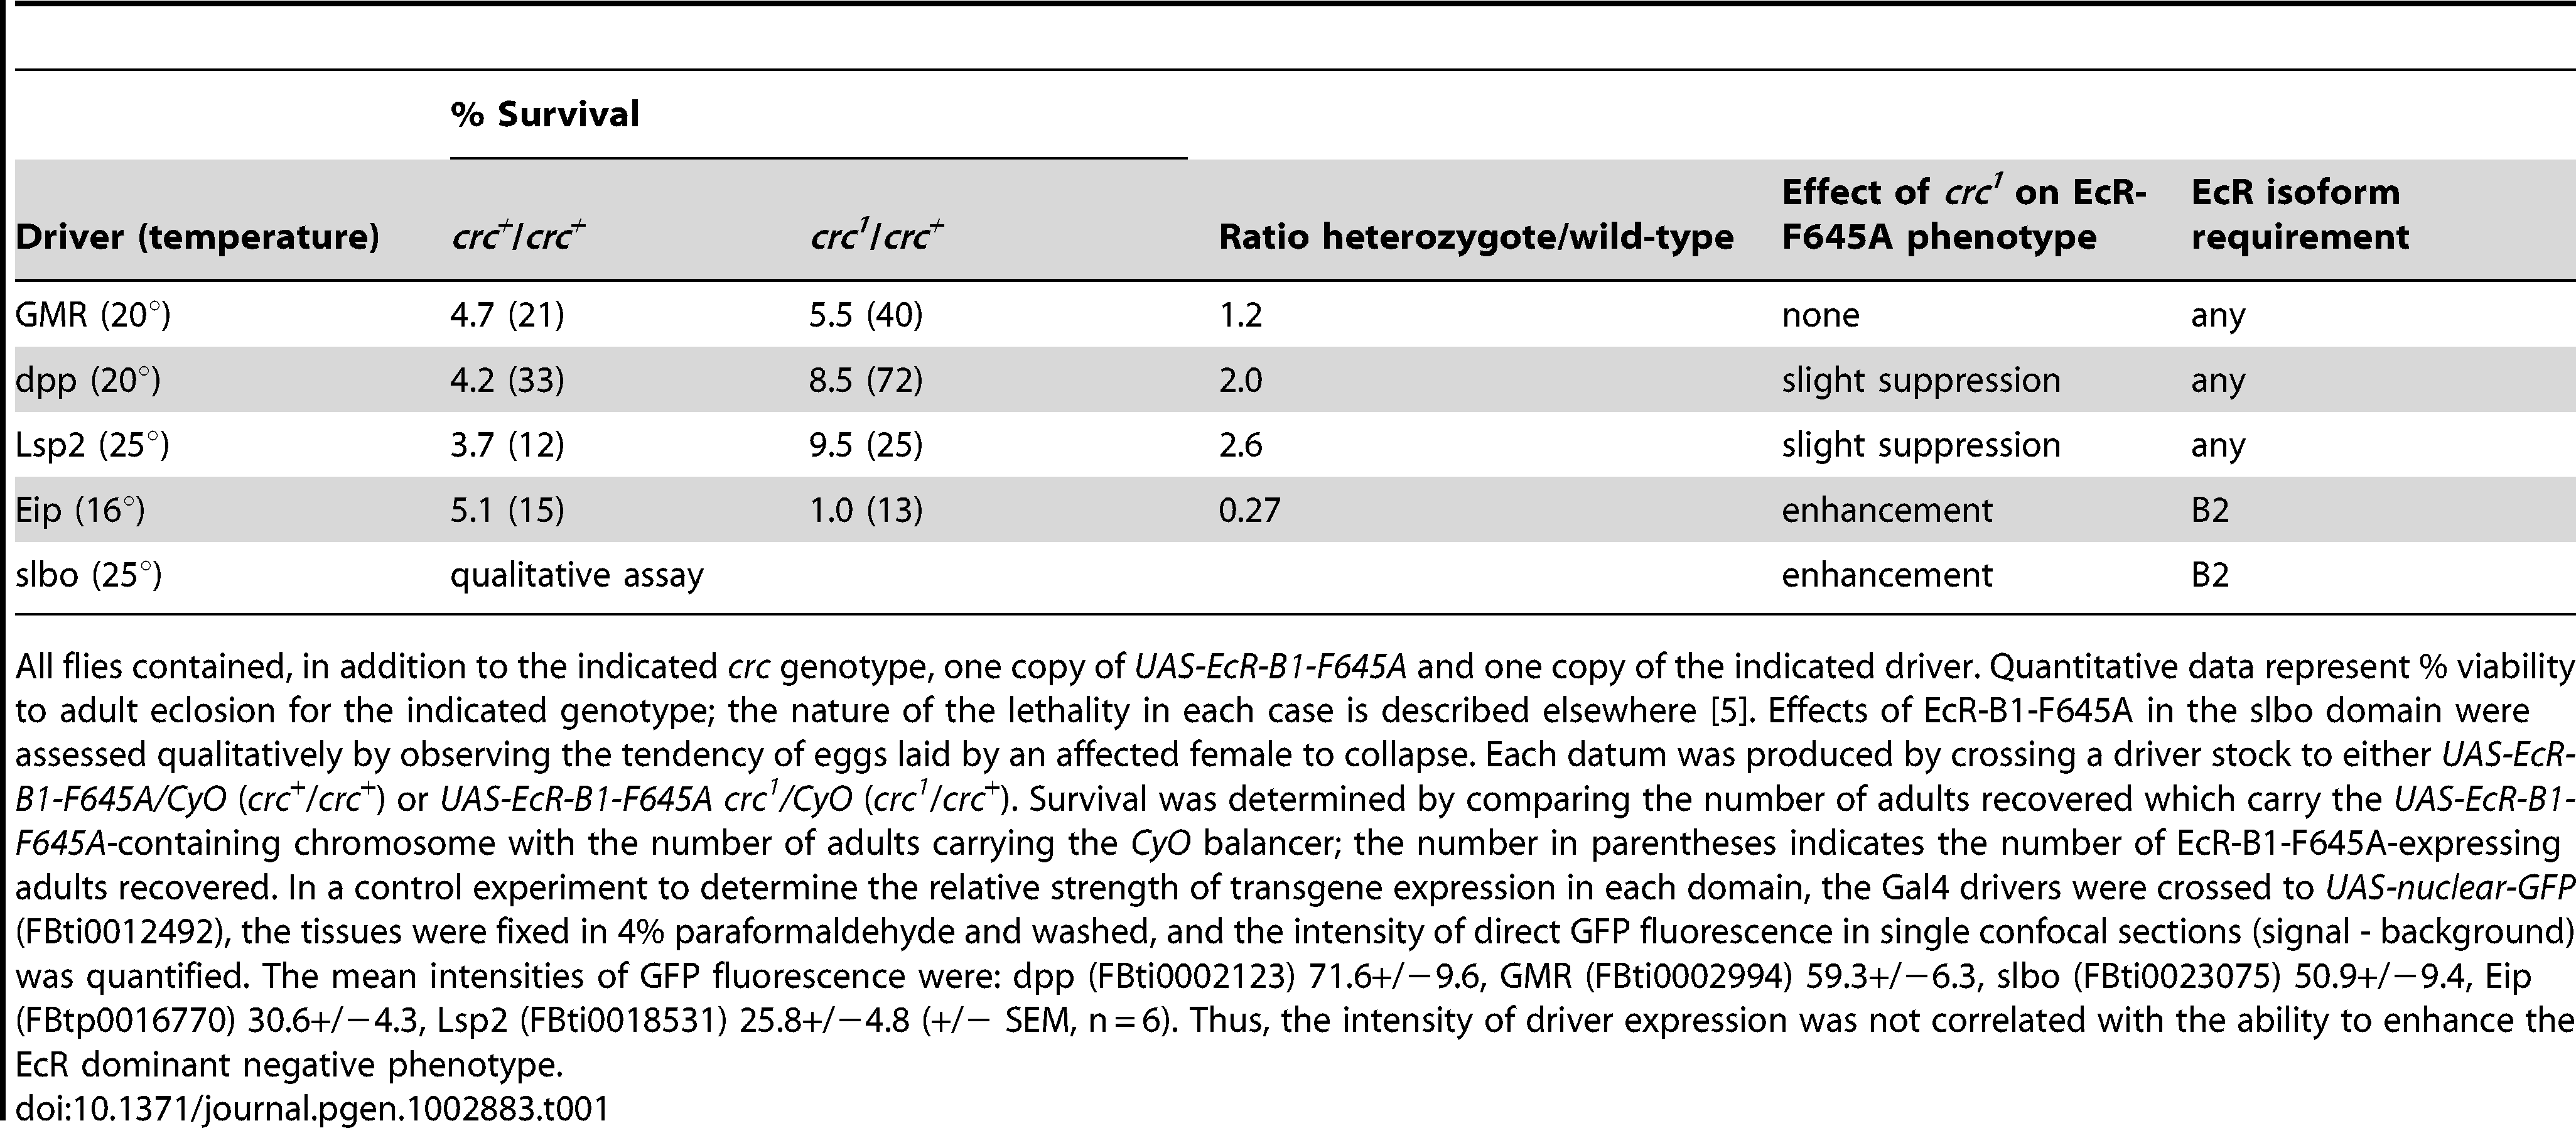 Dominant effects of <i>crc<sup>1</sup></i> on the phenotypes of EcR-B1-F645A expression.